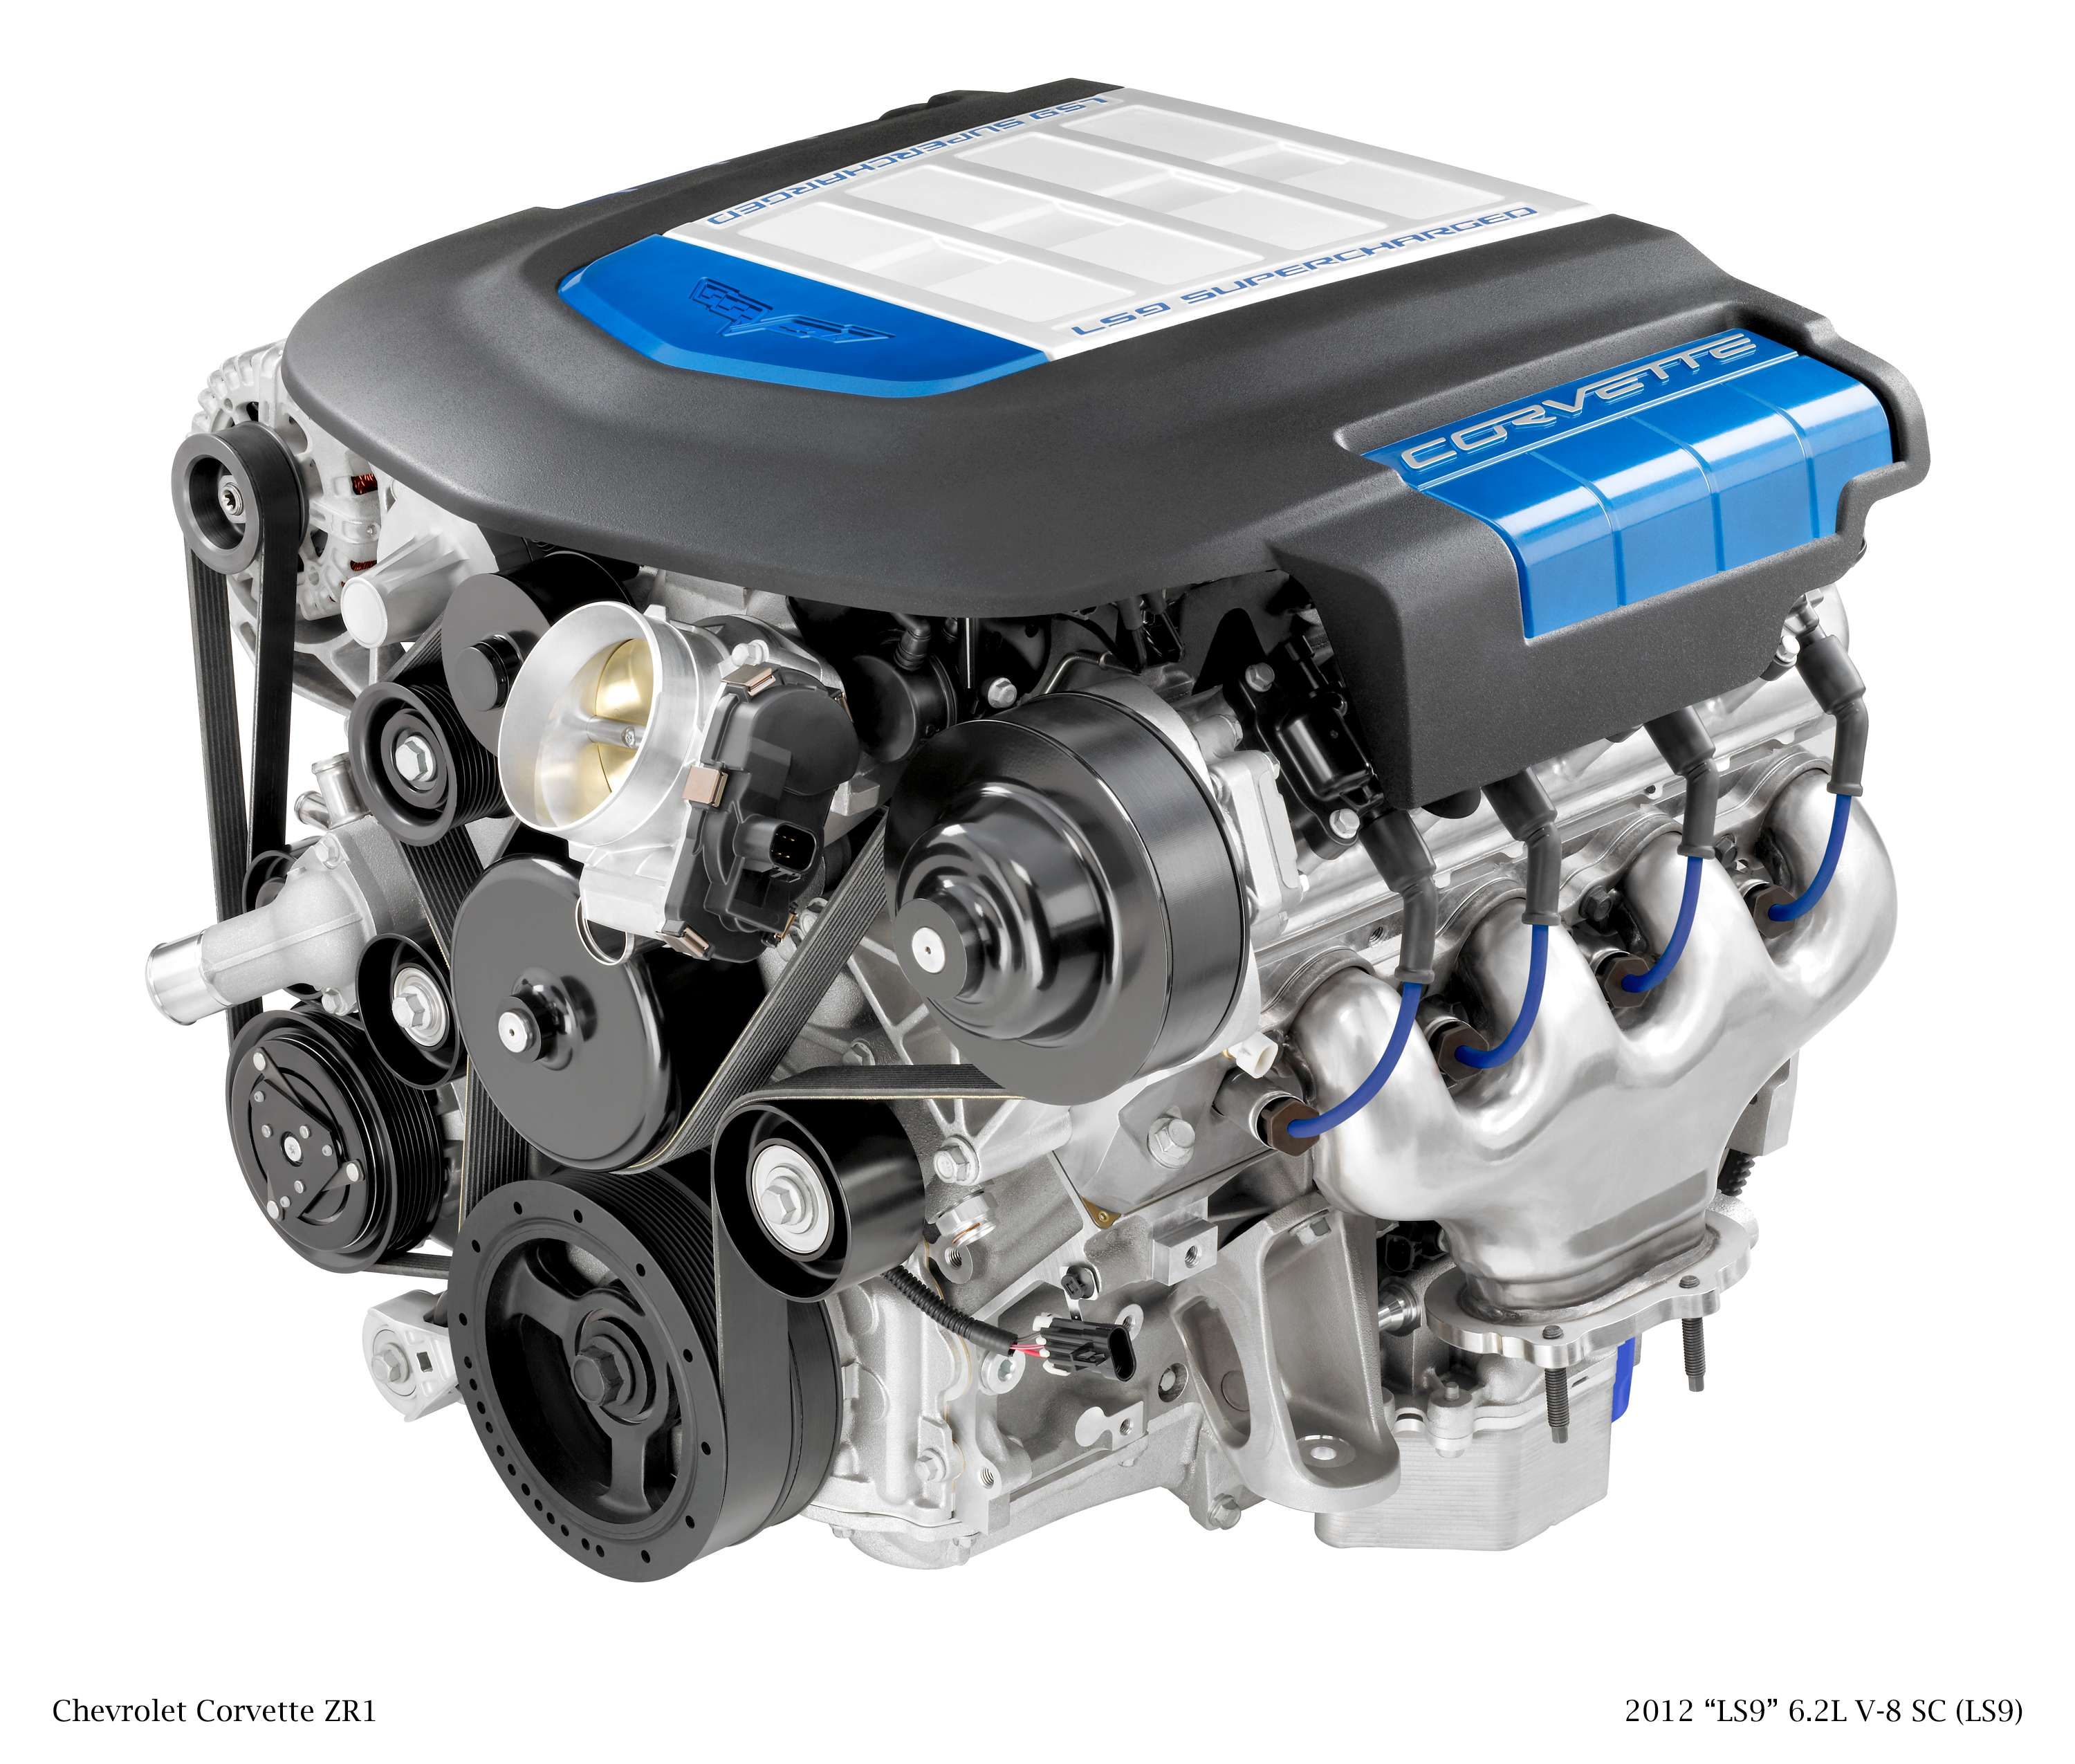 The New Lt1 V8 5th Generation Gm Small Block That Will: Gen V Small Block: GM Promises Leaner And Meaner V8's